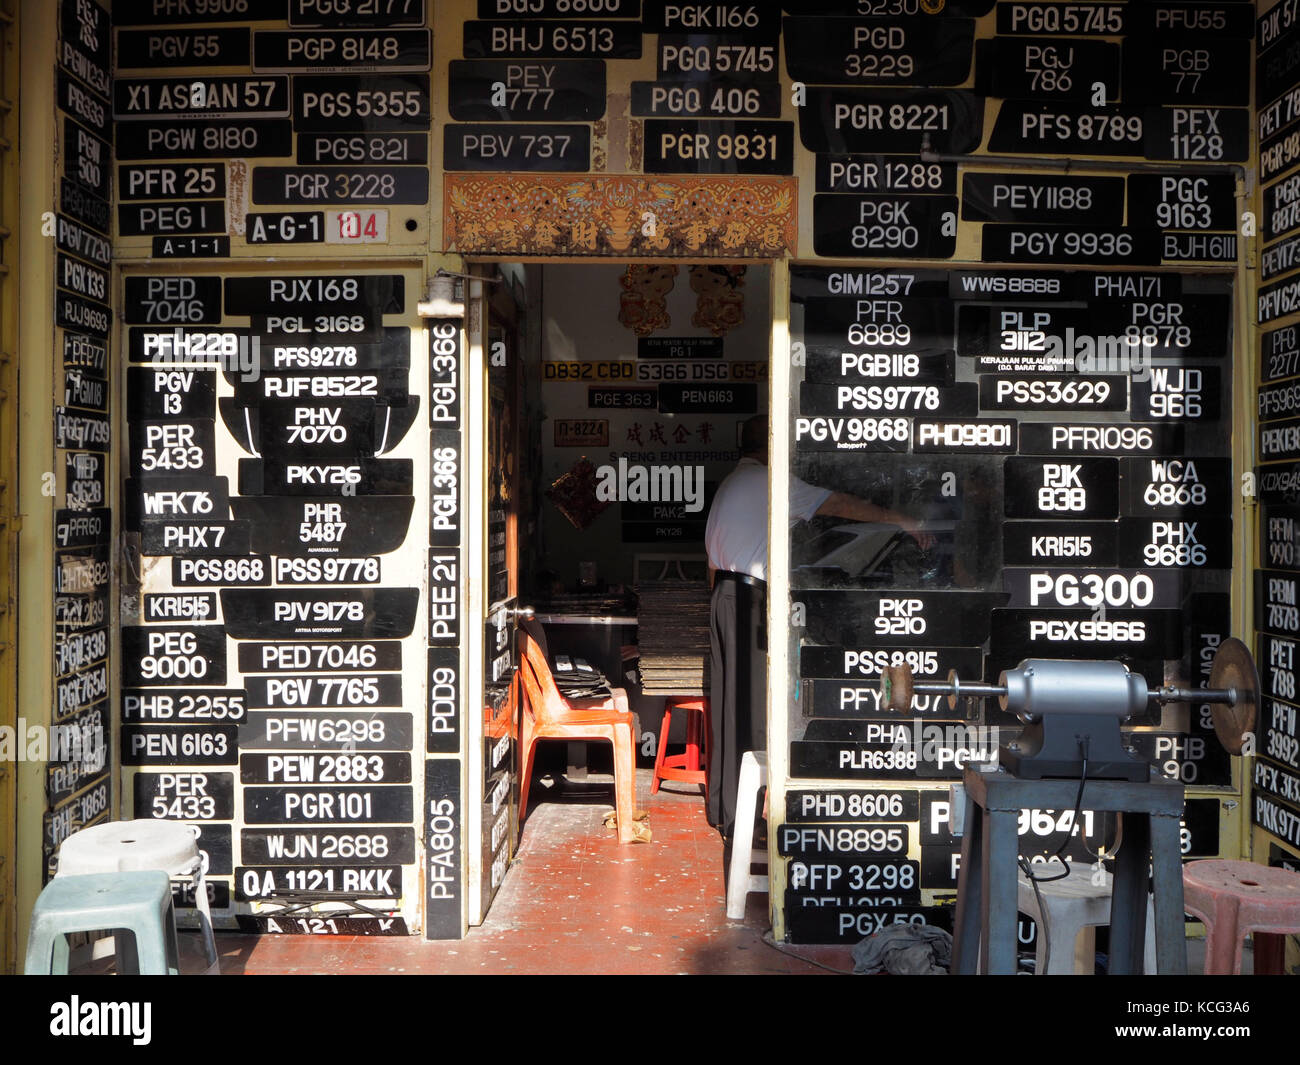 A shop making vehicle number plates in Penang, Malaysia. - Stock Image